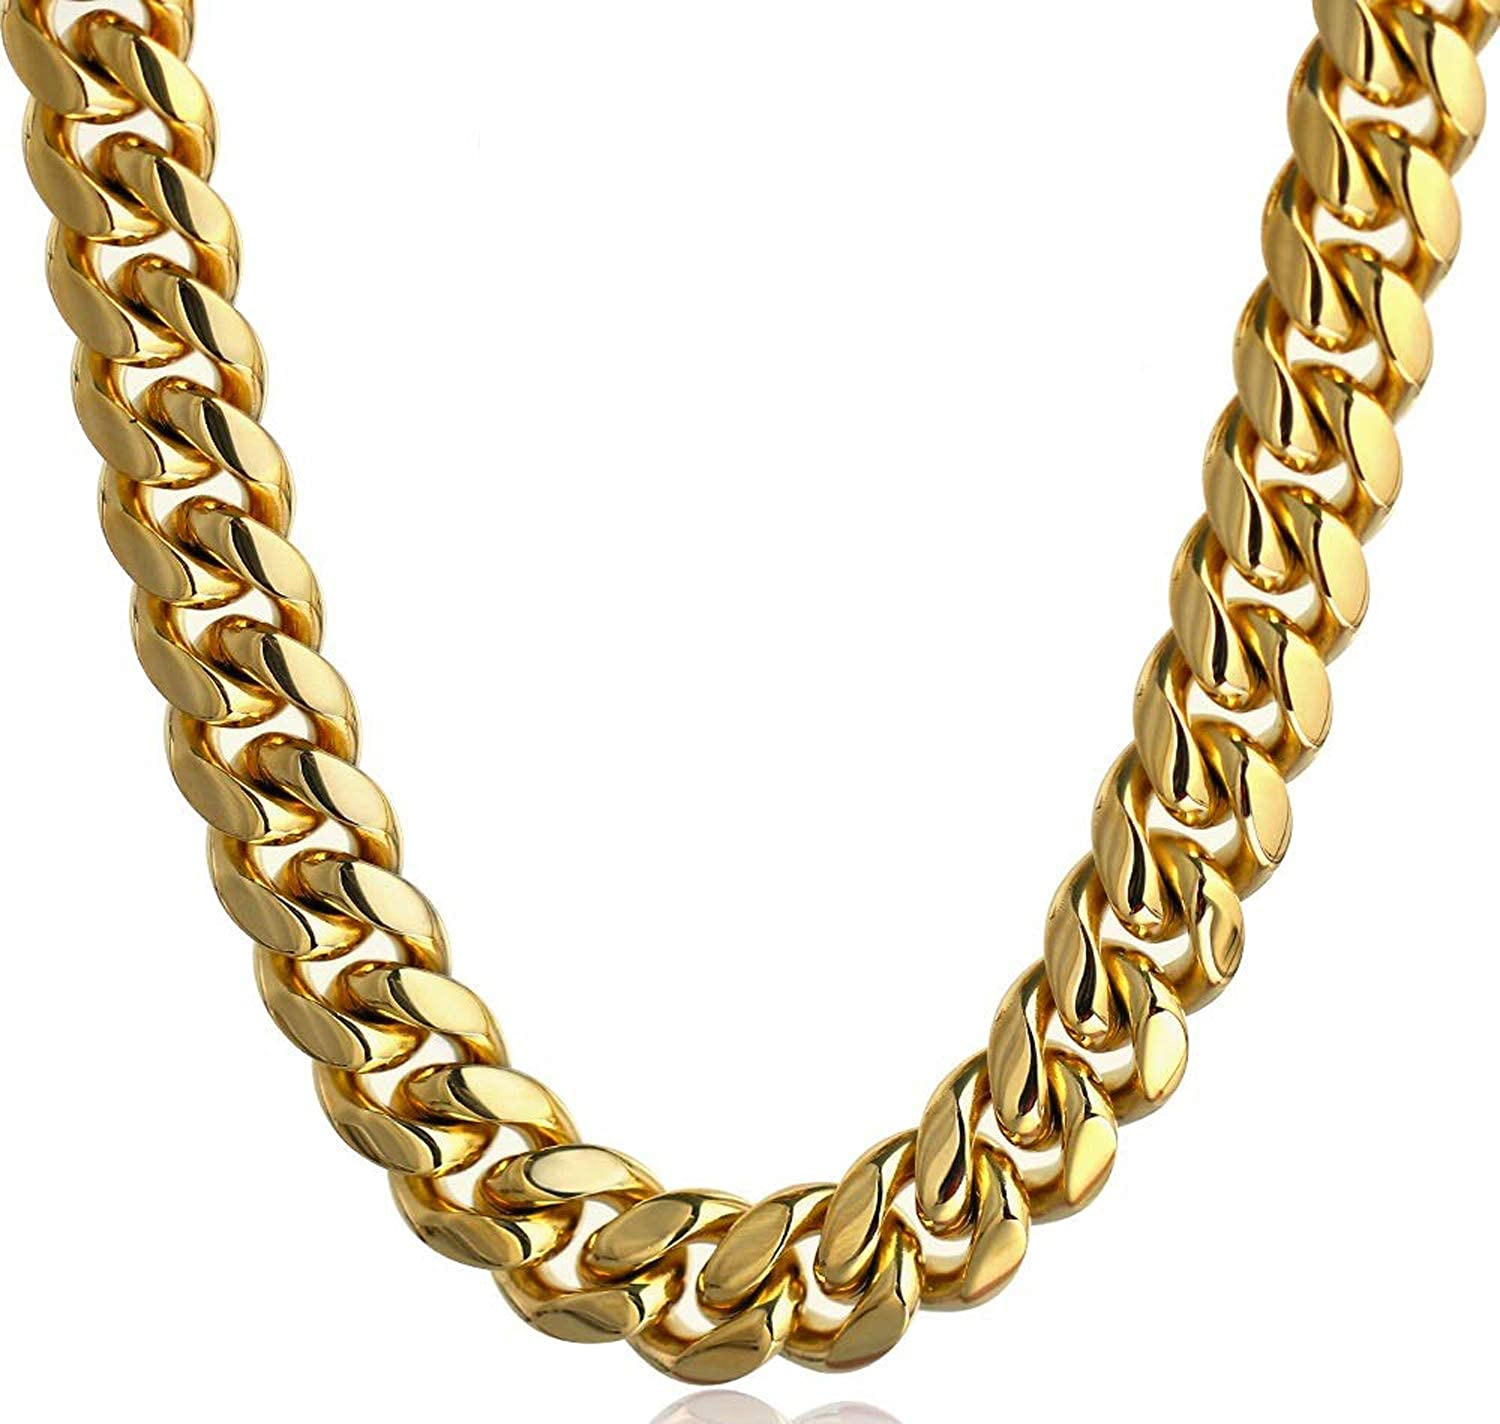 Bforward Jewelry 18K Gold Plated Stainless Steel Heavy Solid Cuban Link Chain with Secure Box Clasp Lock-Hip Hop Jewelry Necklace